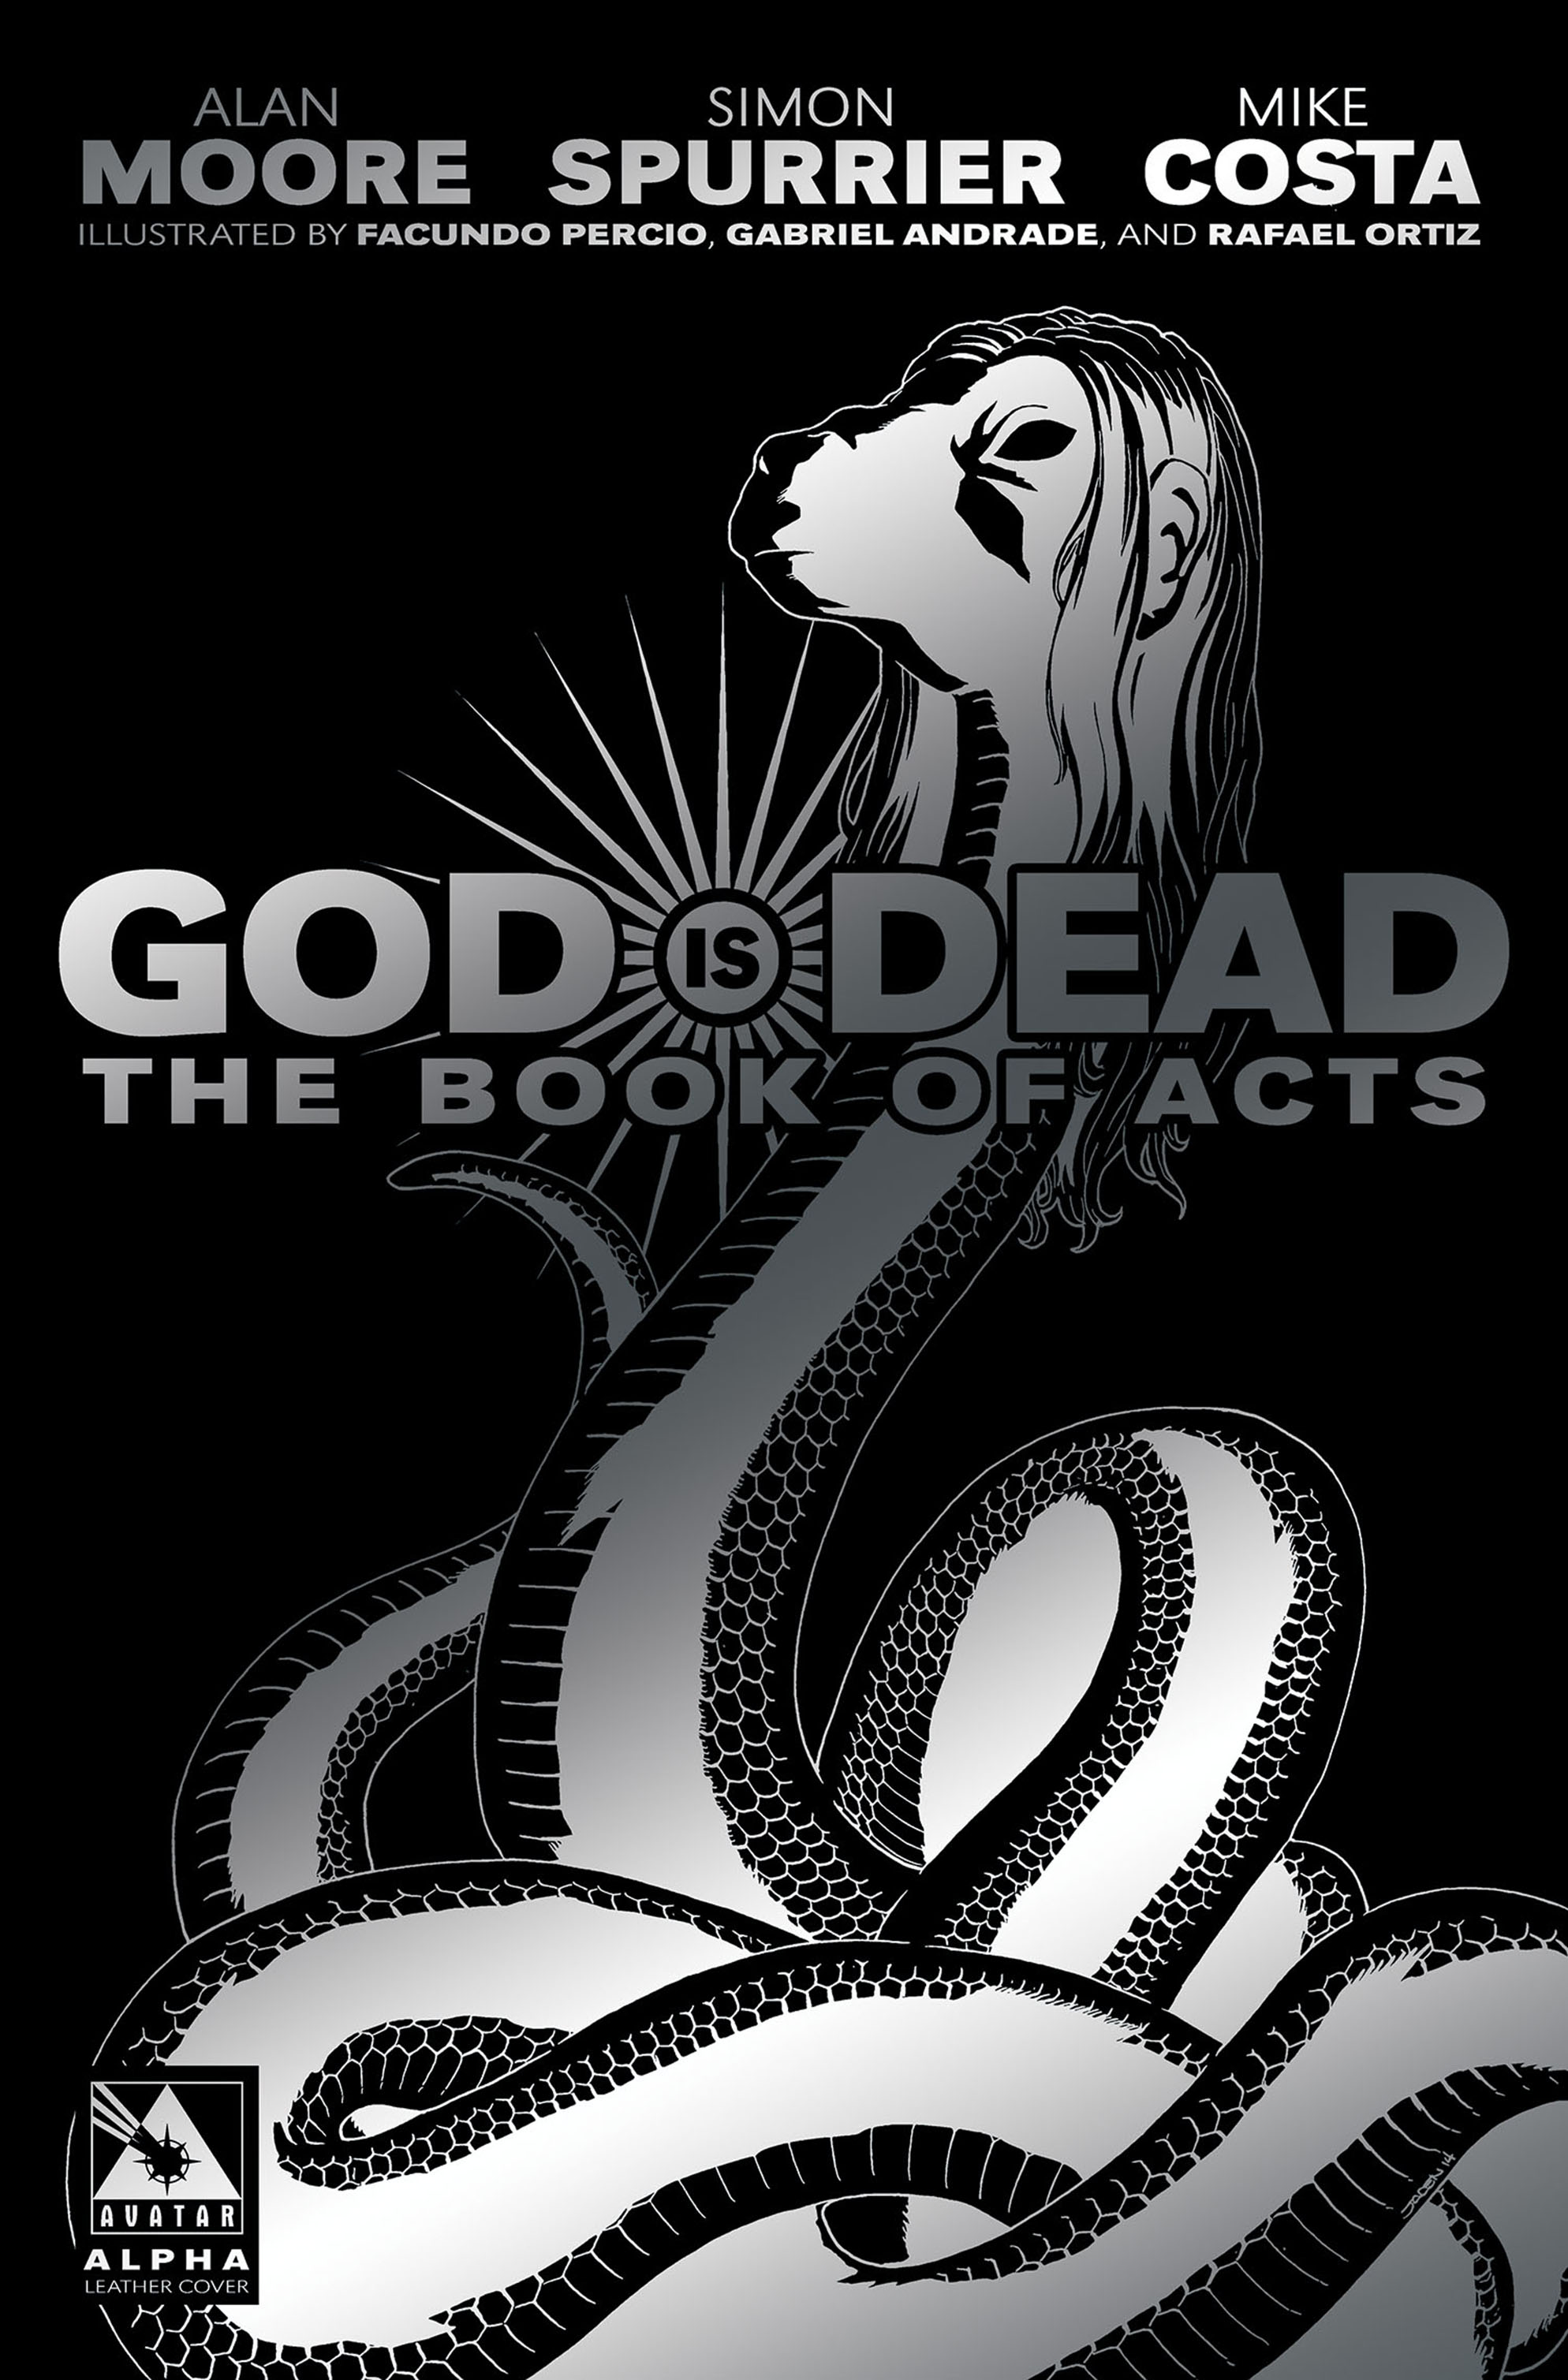 Read online God is Dead: Book of Acts comic -  Issue # Alpha - 6